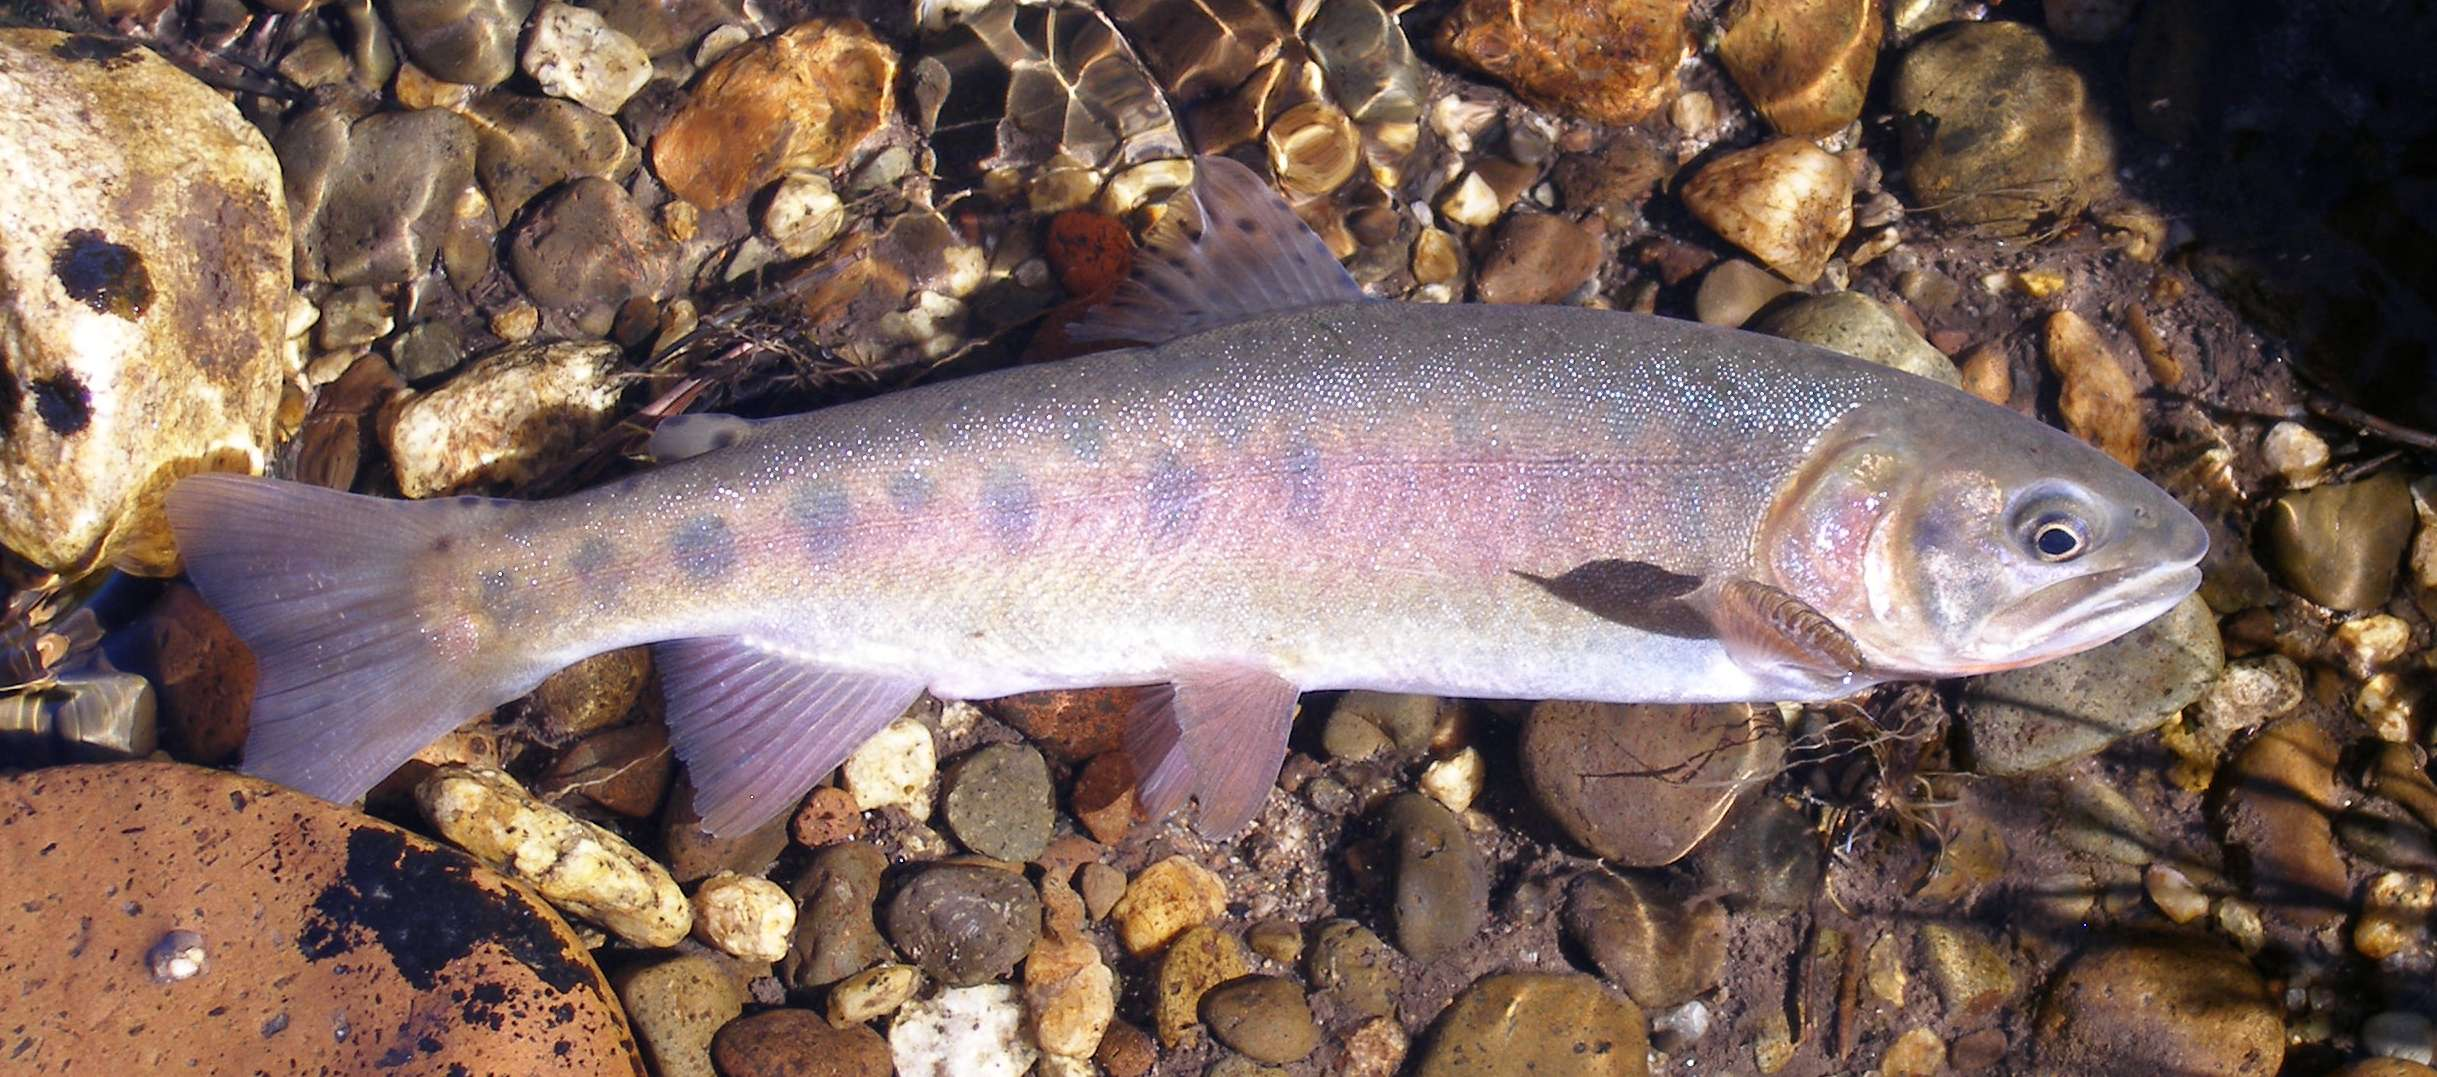 Photo of Paiute cutthroat. Credit: Bill Somer, California Department of Fish and Wildlife